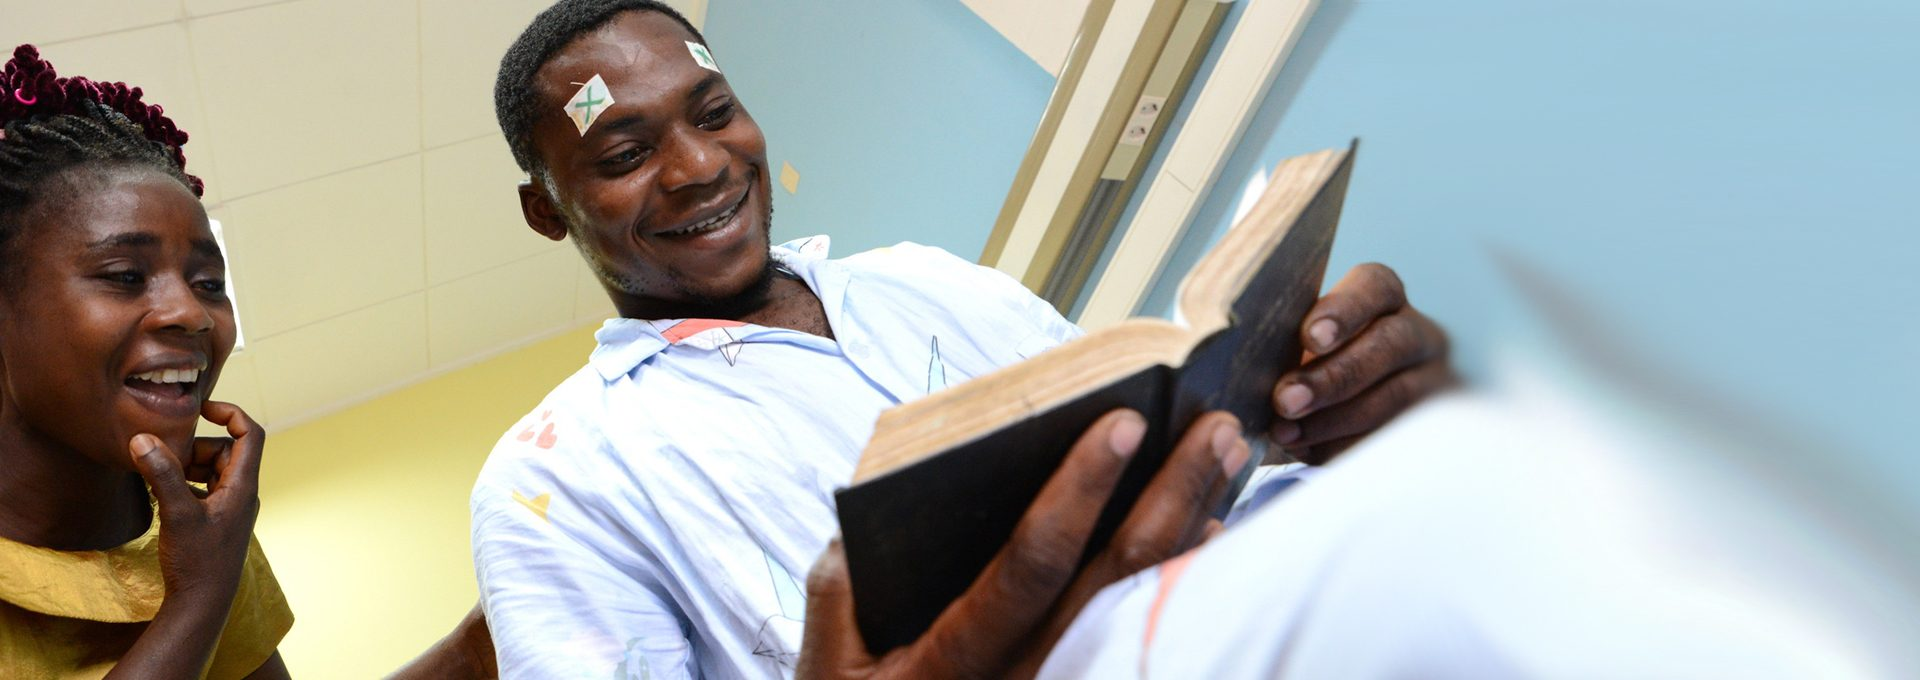 Desire reading the bible after successful cataract surgery